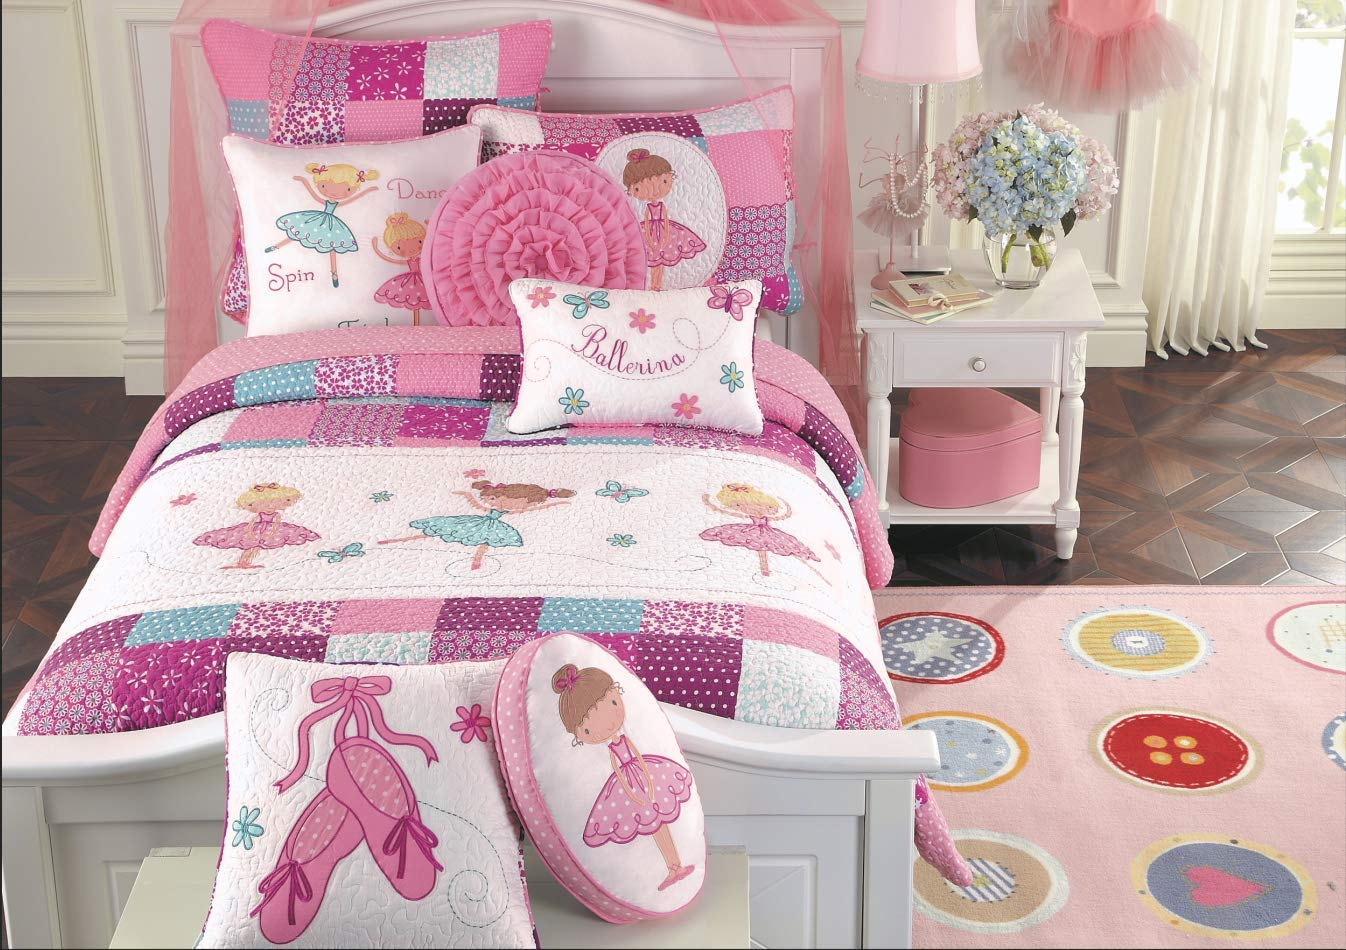 Cozy Line Home Fashions Ballerina Dance Princess Bedding Quilt Set, Pink Orchid Light Purple 100% Cotton Bedspread for Kids Girl (Pink Embroidered, Twin - 7 Piece)